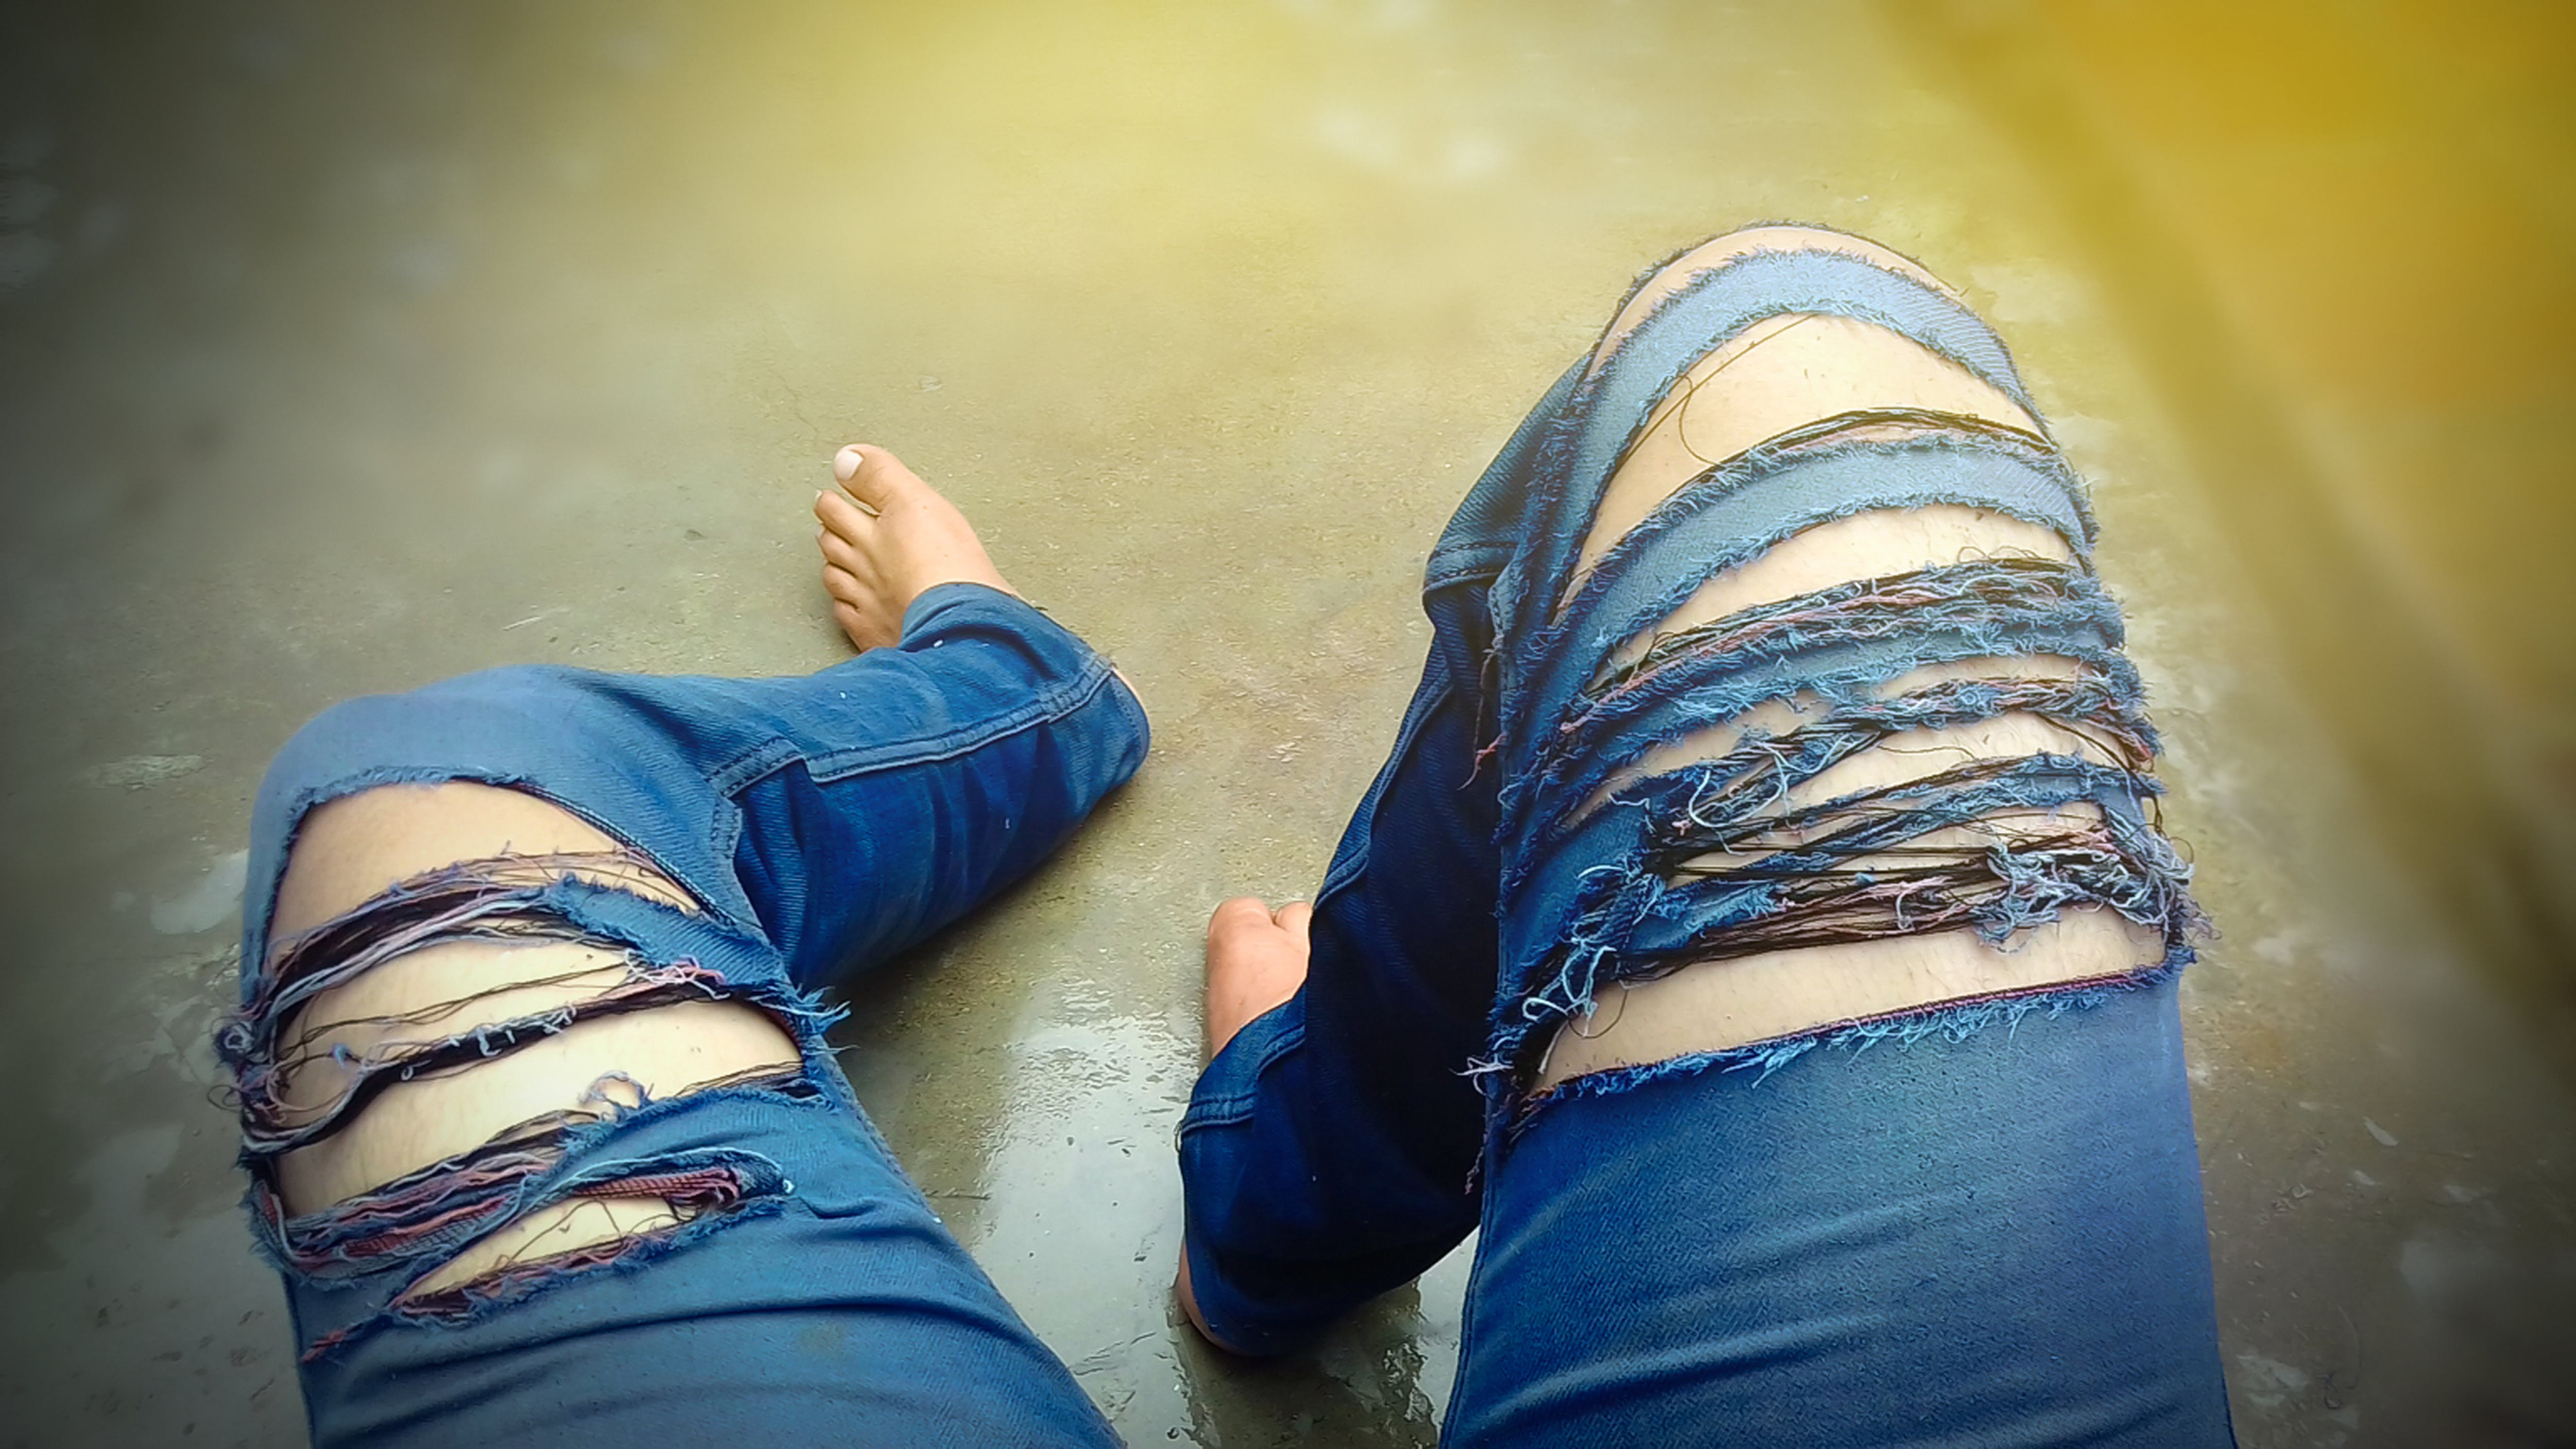 Free stock photo of asian man, blue jeans, clothes, clothing